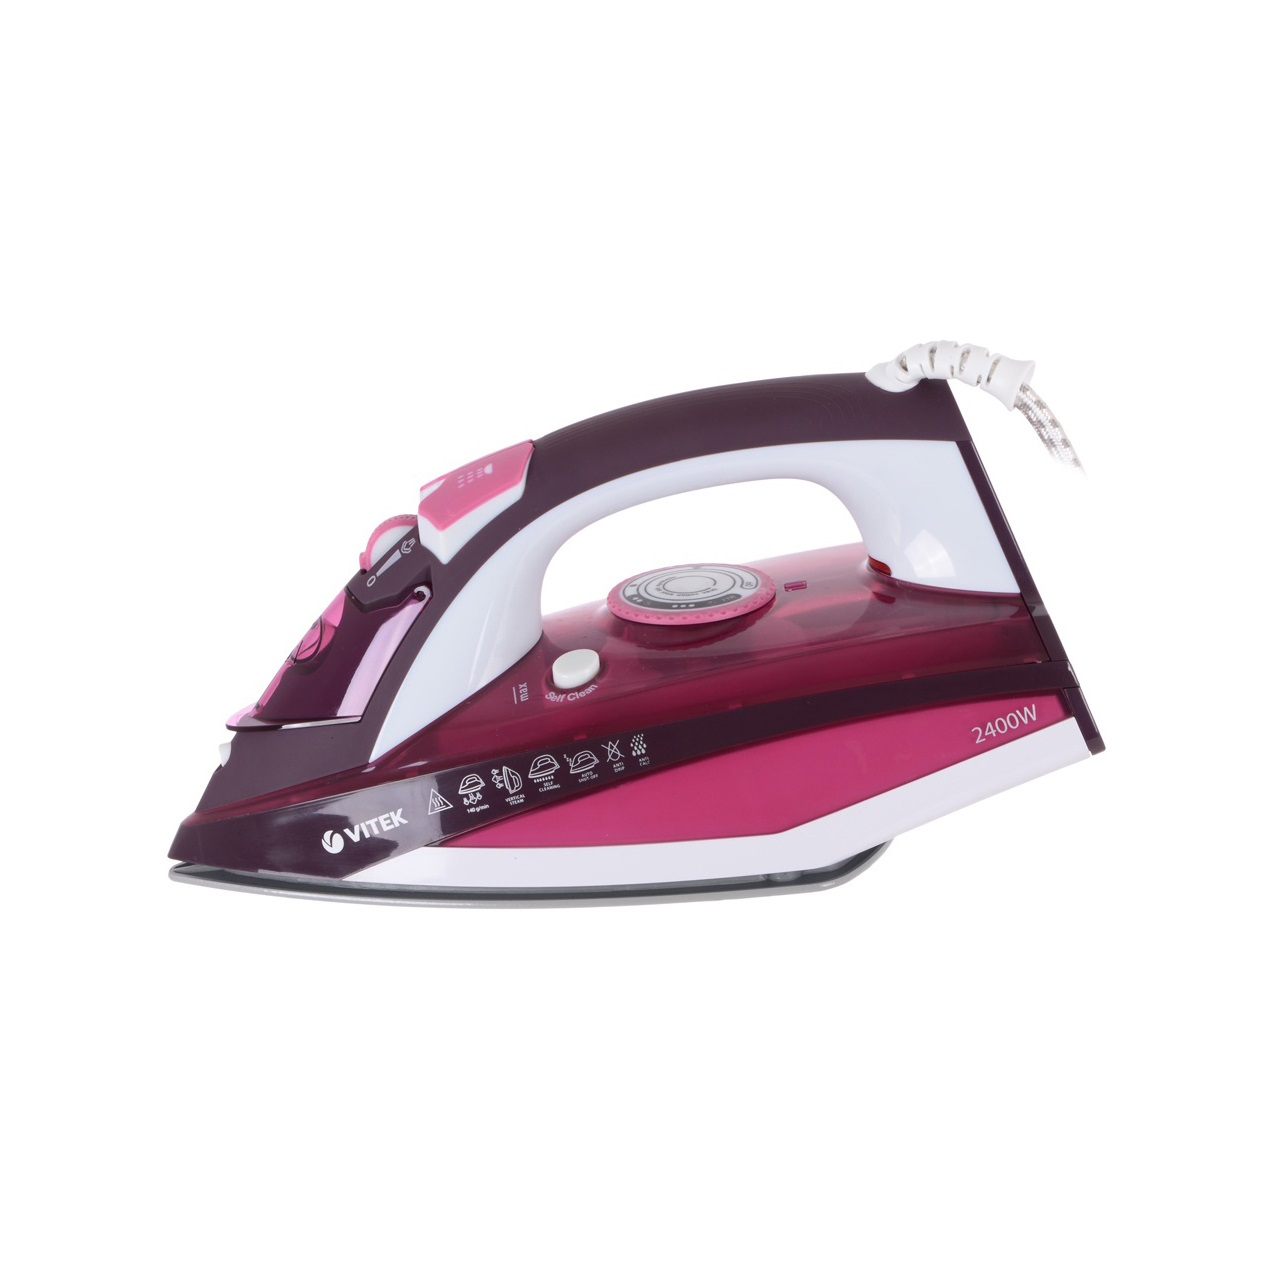 Iron Vitek VT-1215 PK (2400 W Power, steam, self-cleaning system, anti-drip system) утюг vitek vt 1215 pk